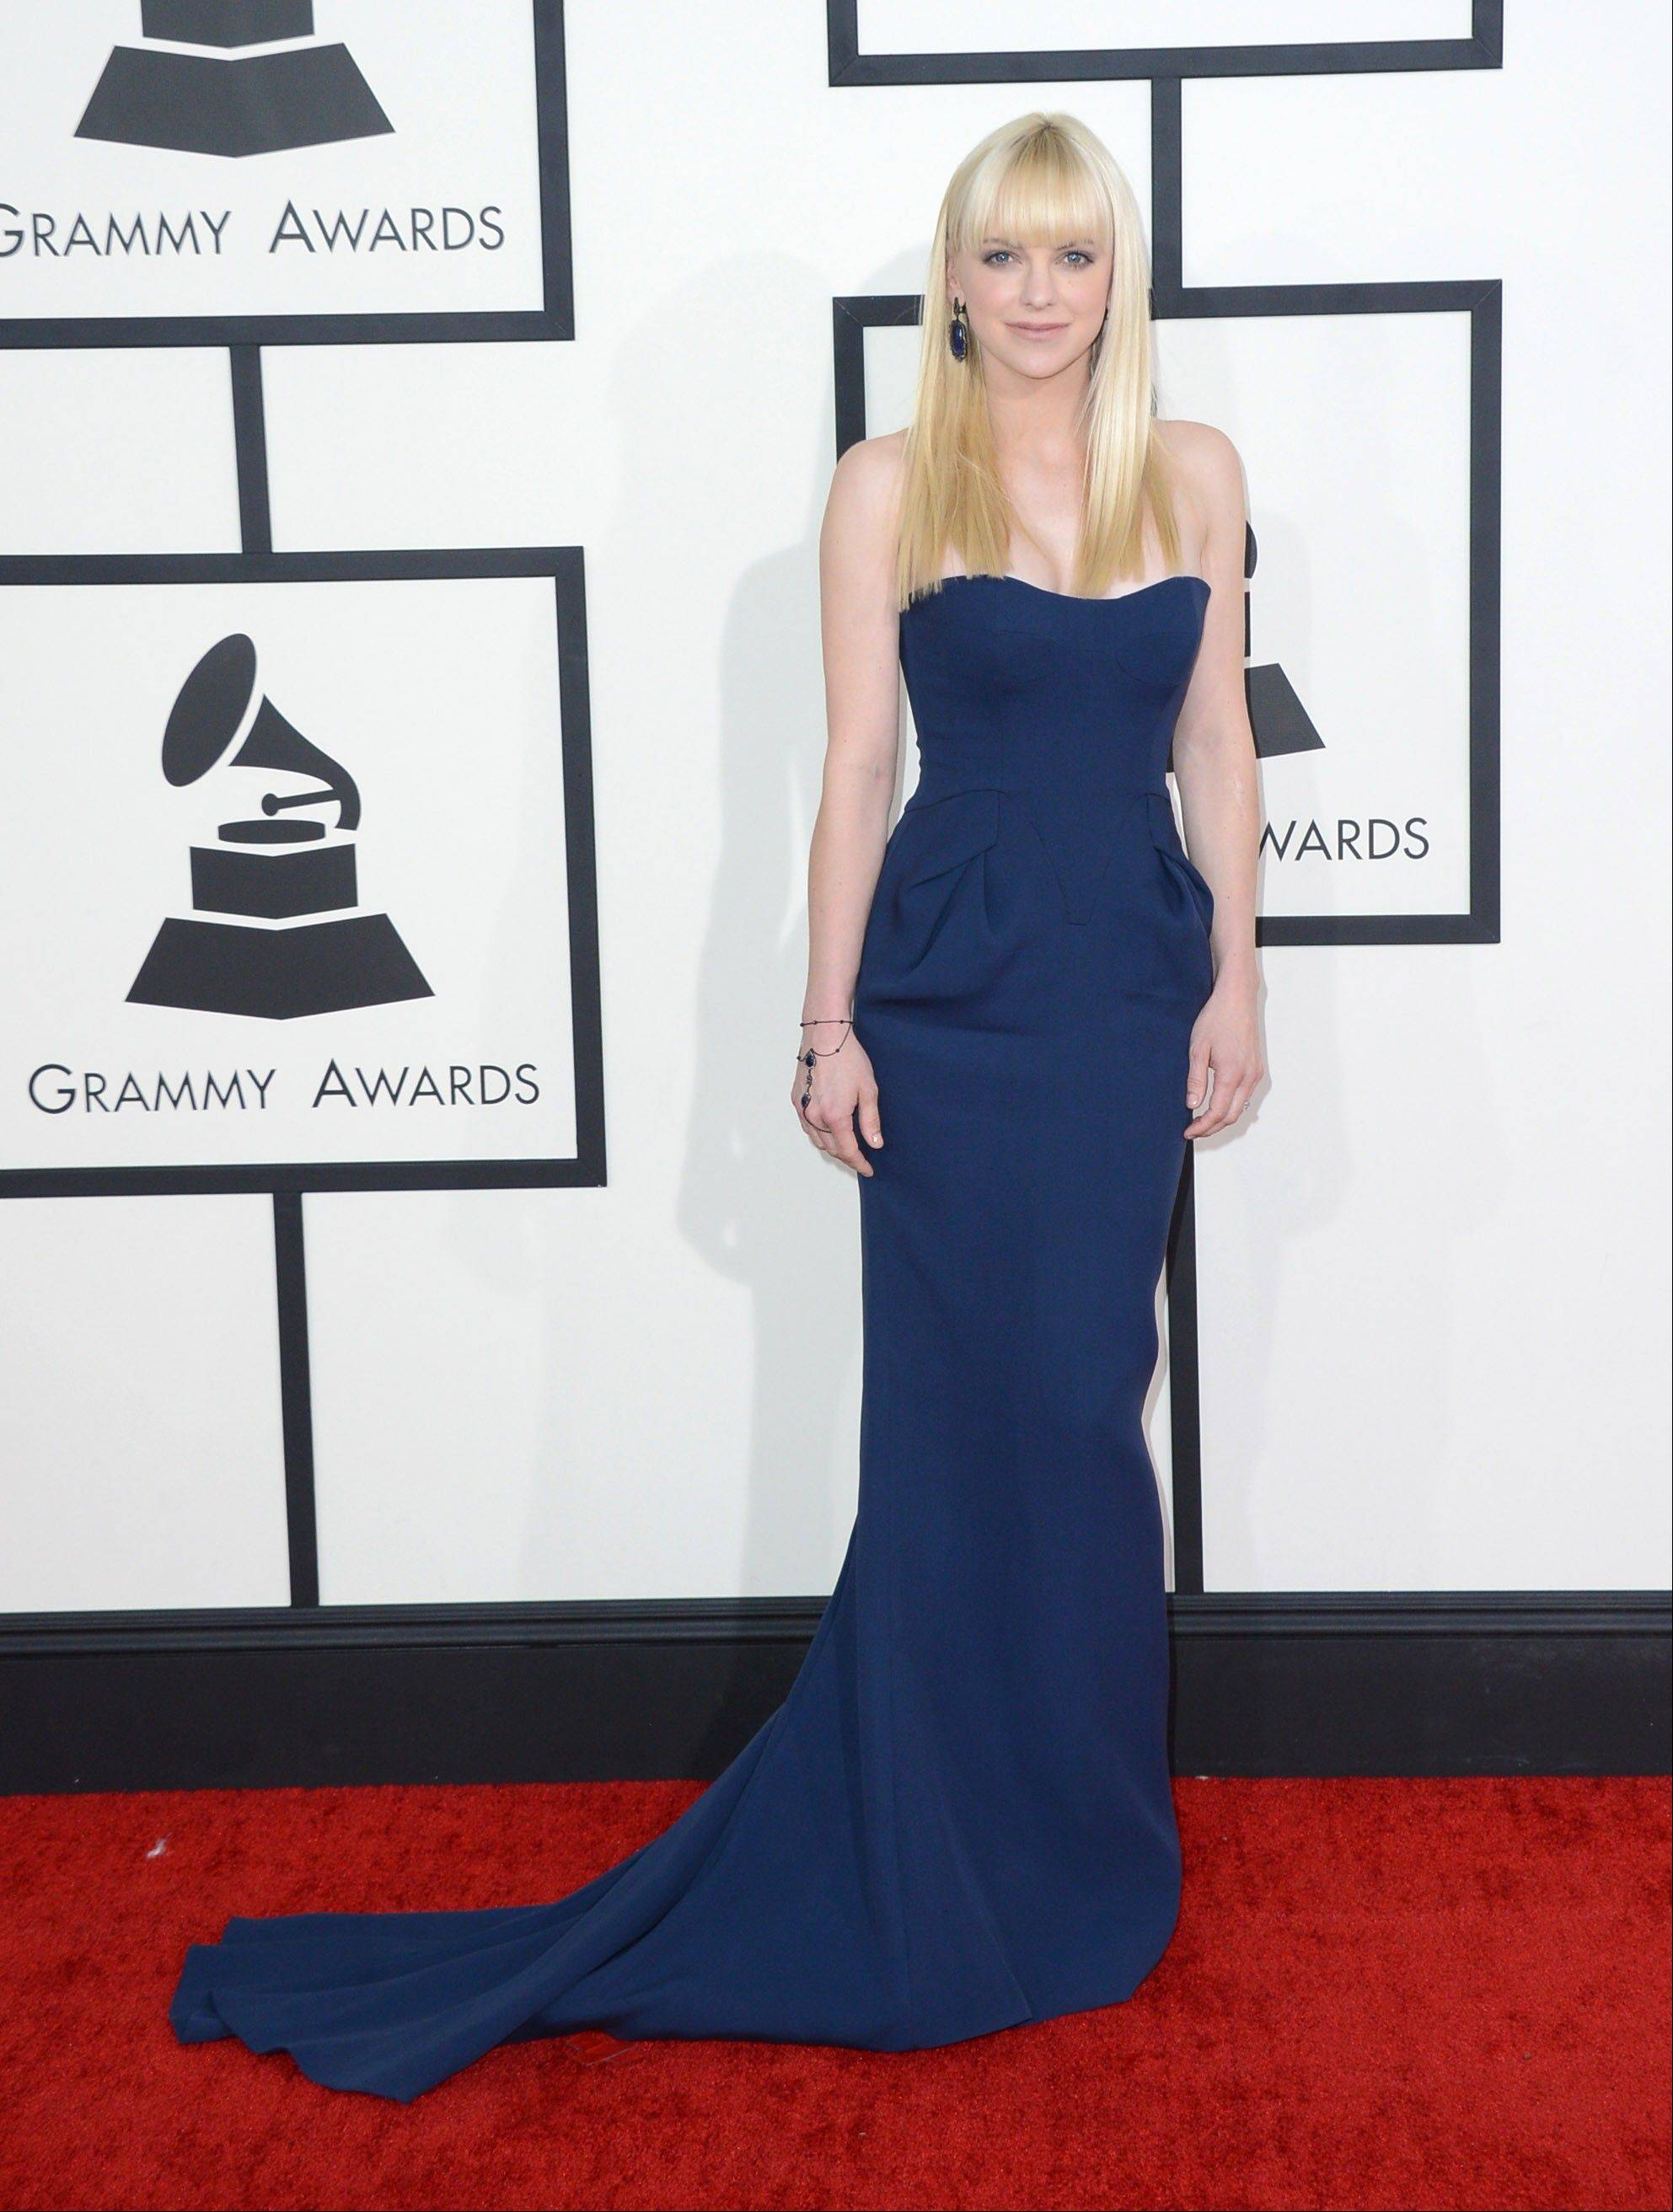 Anna Faris arrives at the 56th annual Grammy Awards at Staples Center on Sunday.